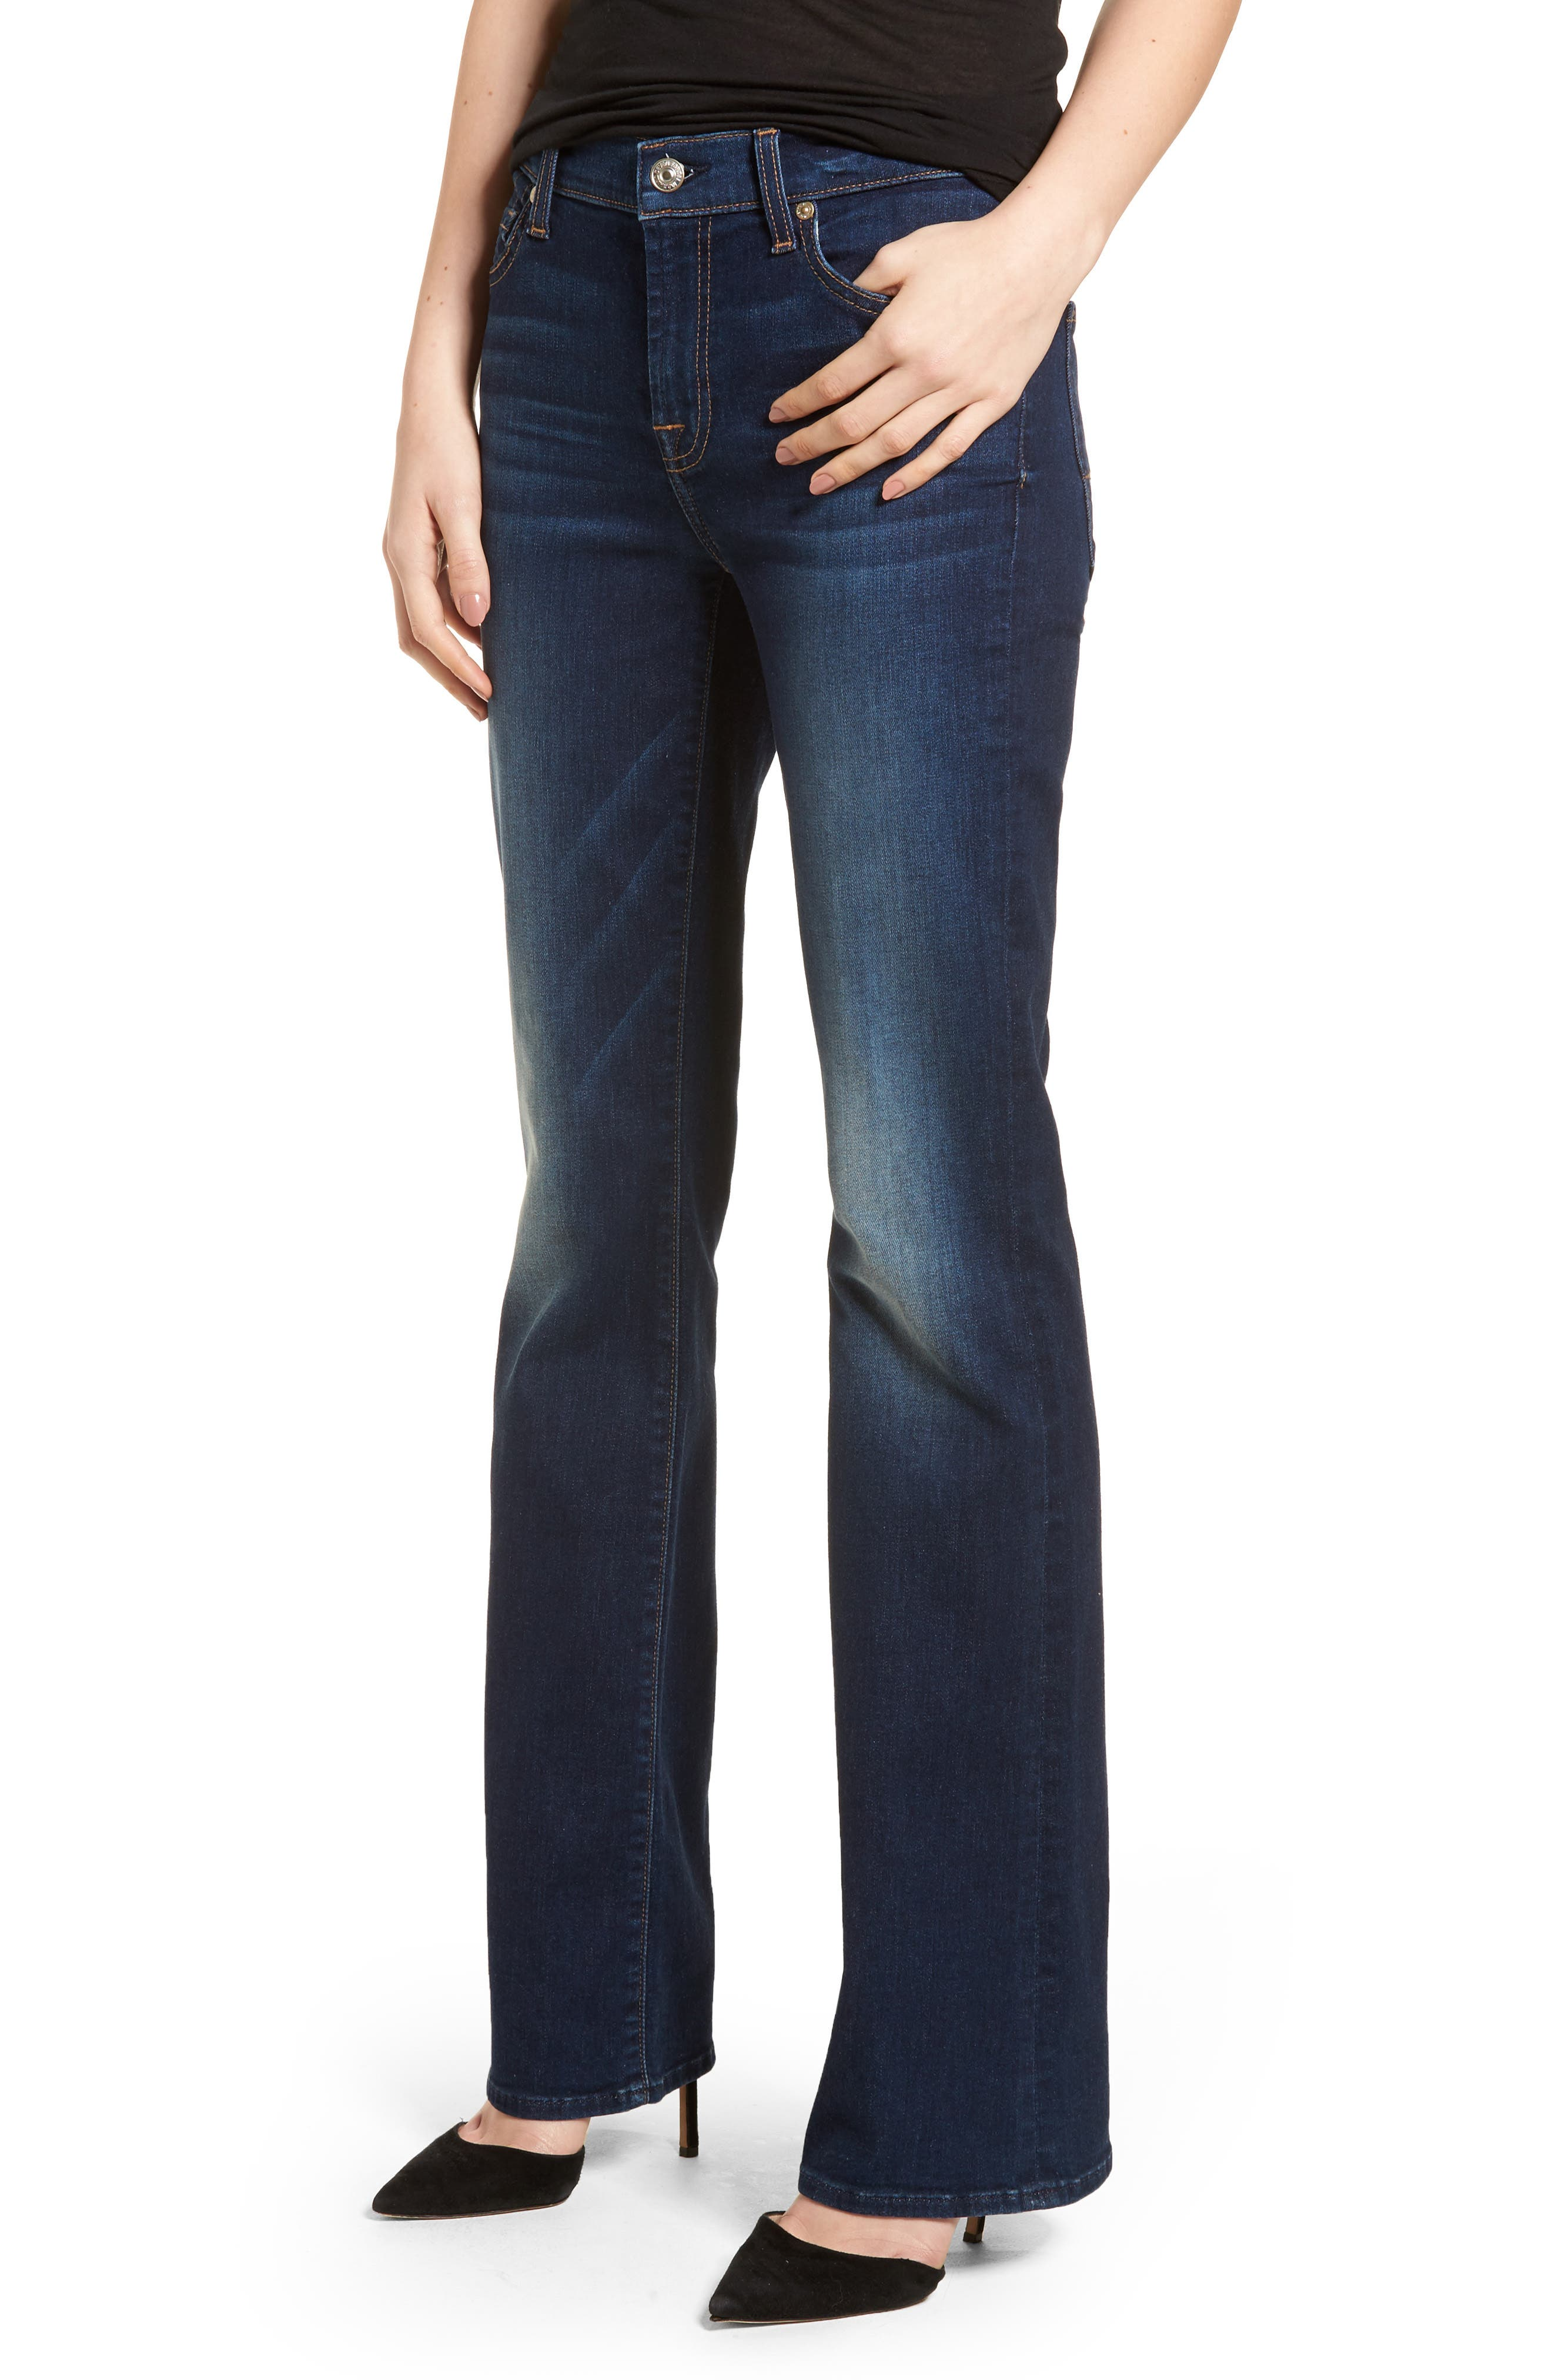 b(air) Tailorless Iconic Bootcut Jeans,                         Main,                         color, MORENO